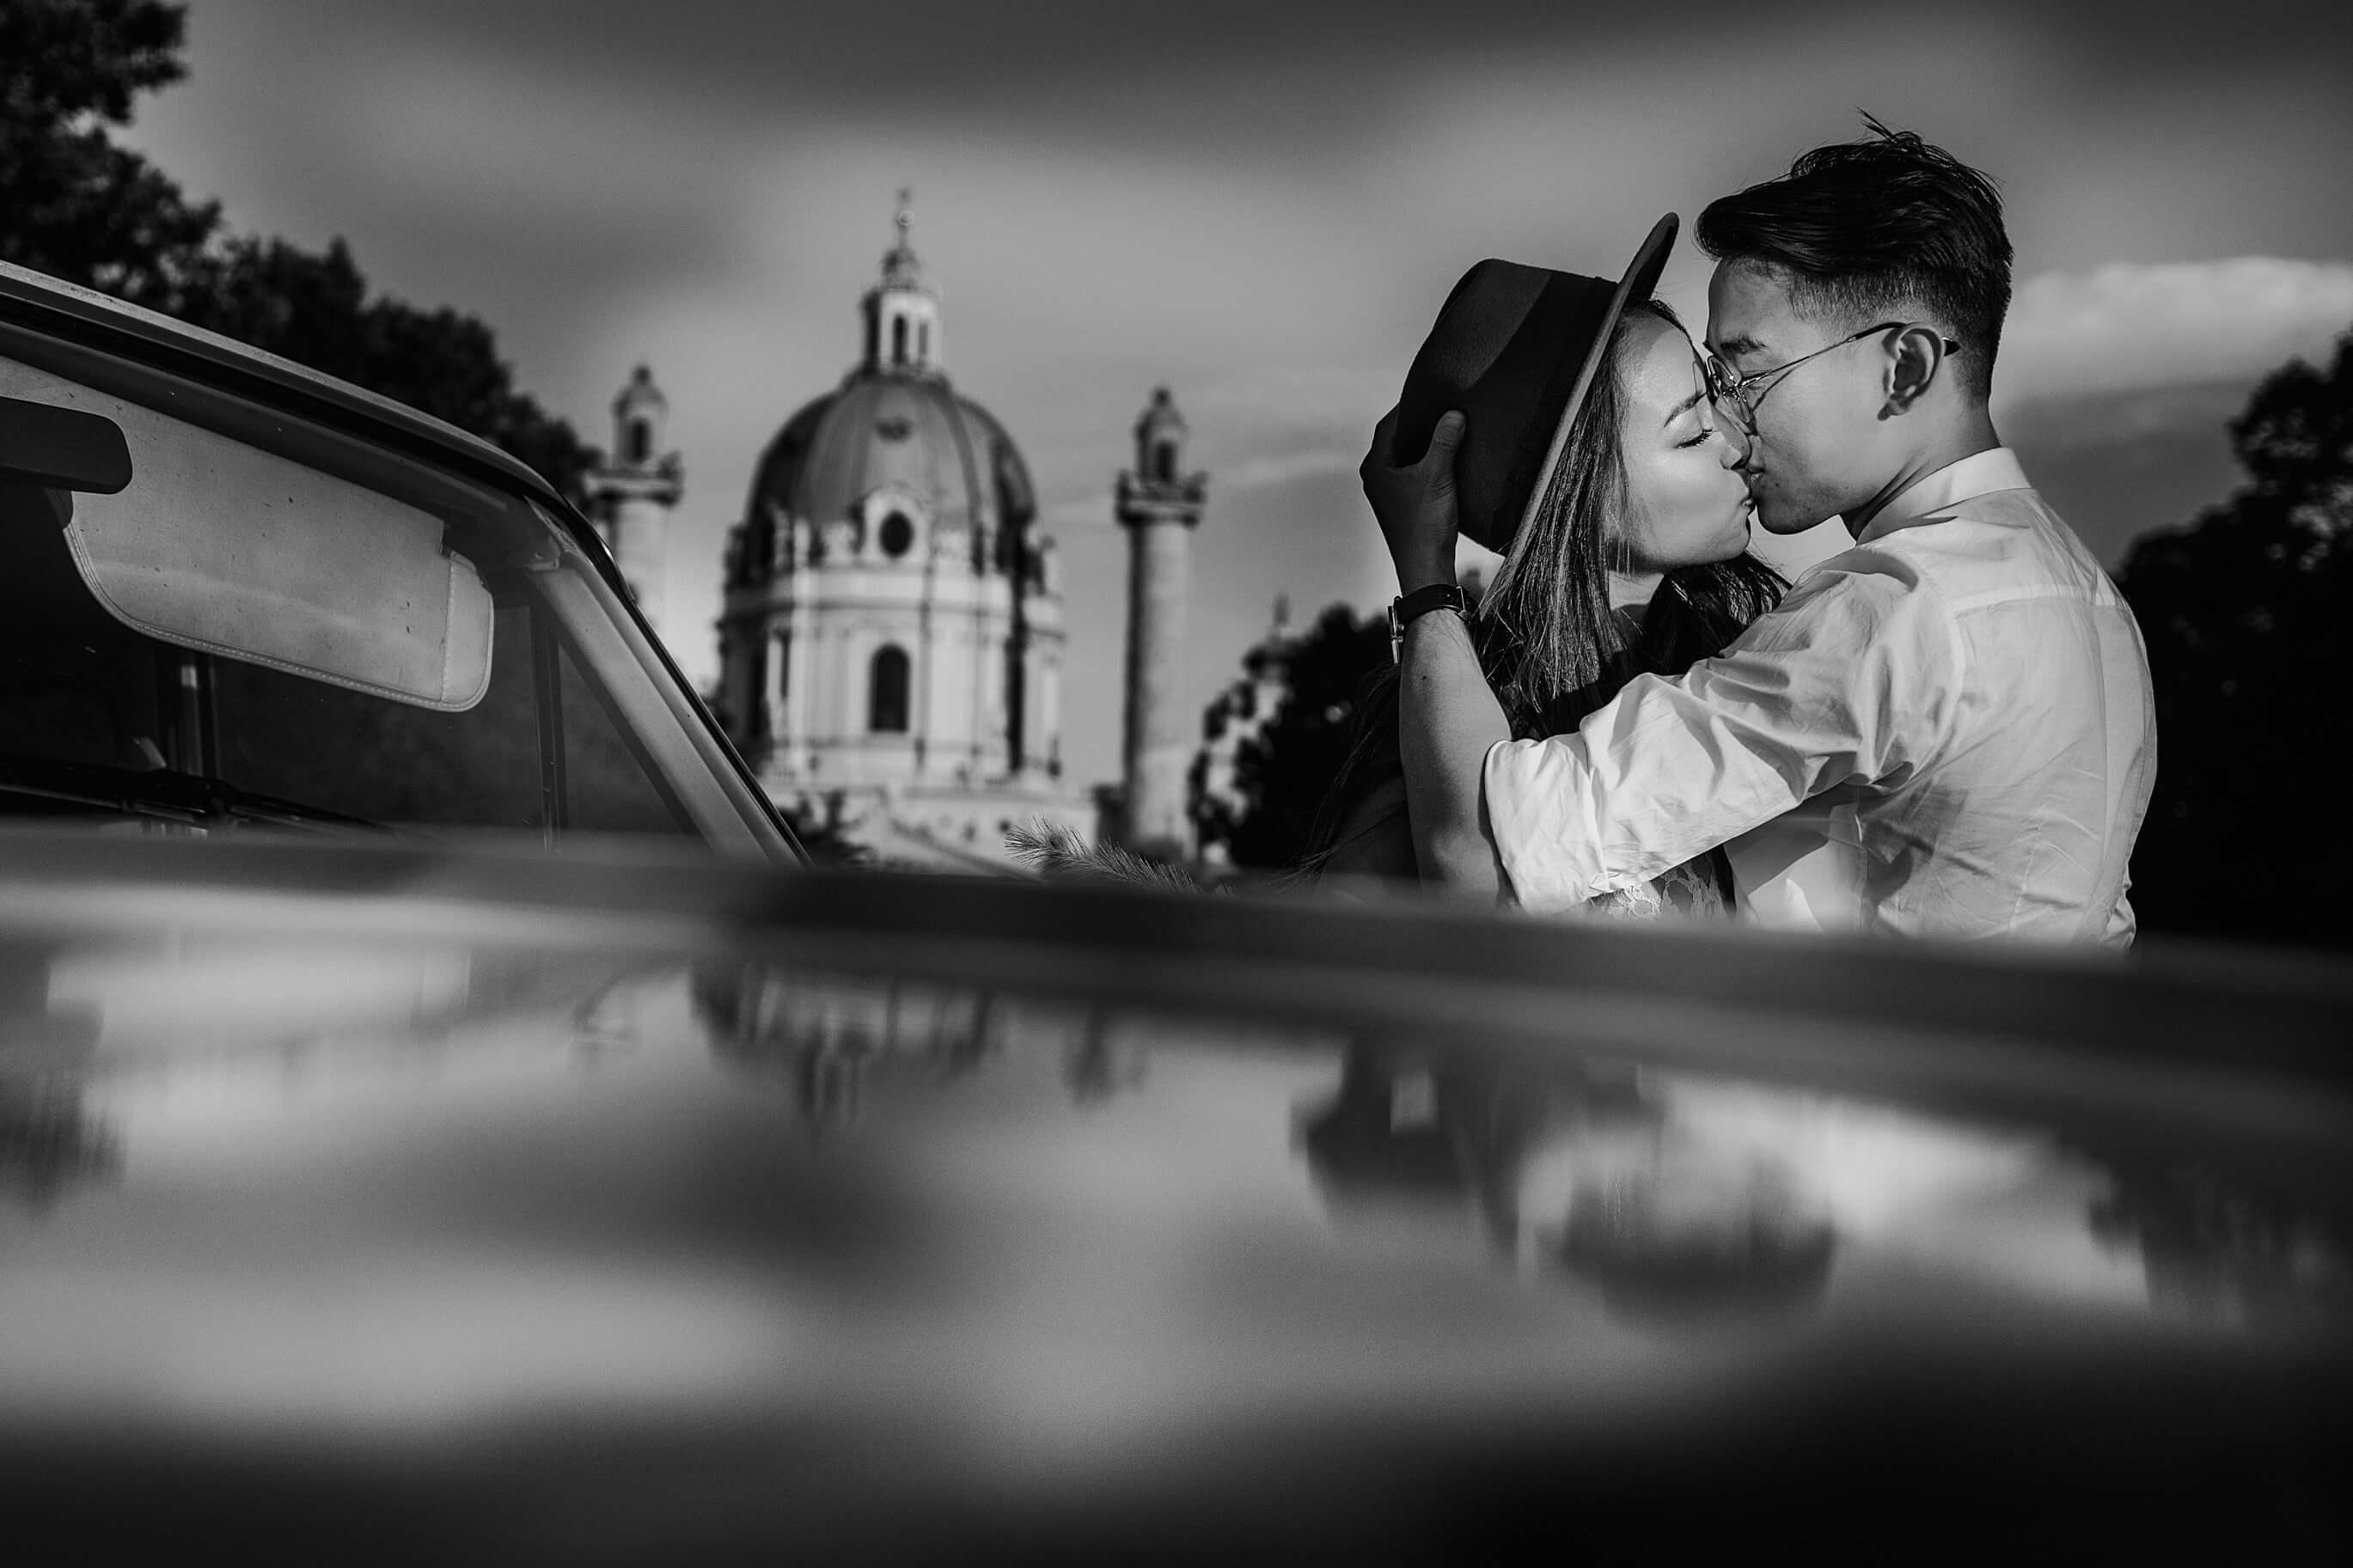 Couple Photoshoot in Vienne, Austria - Sergio Mazurini